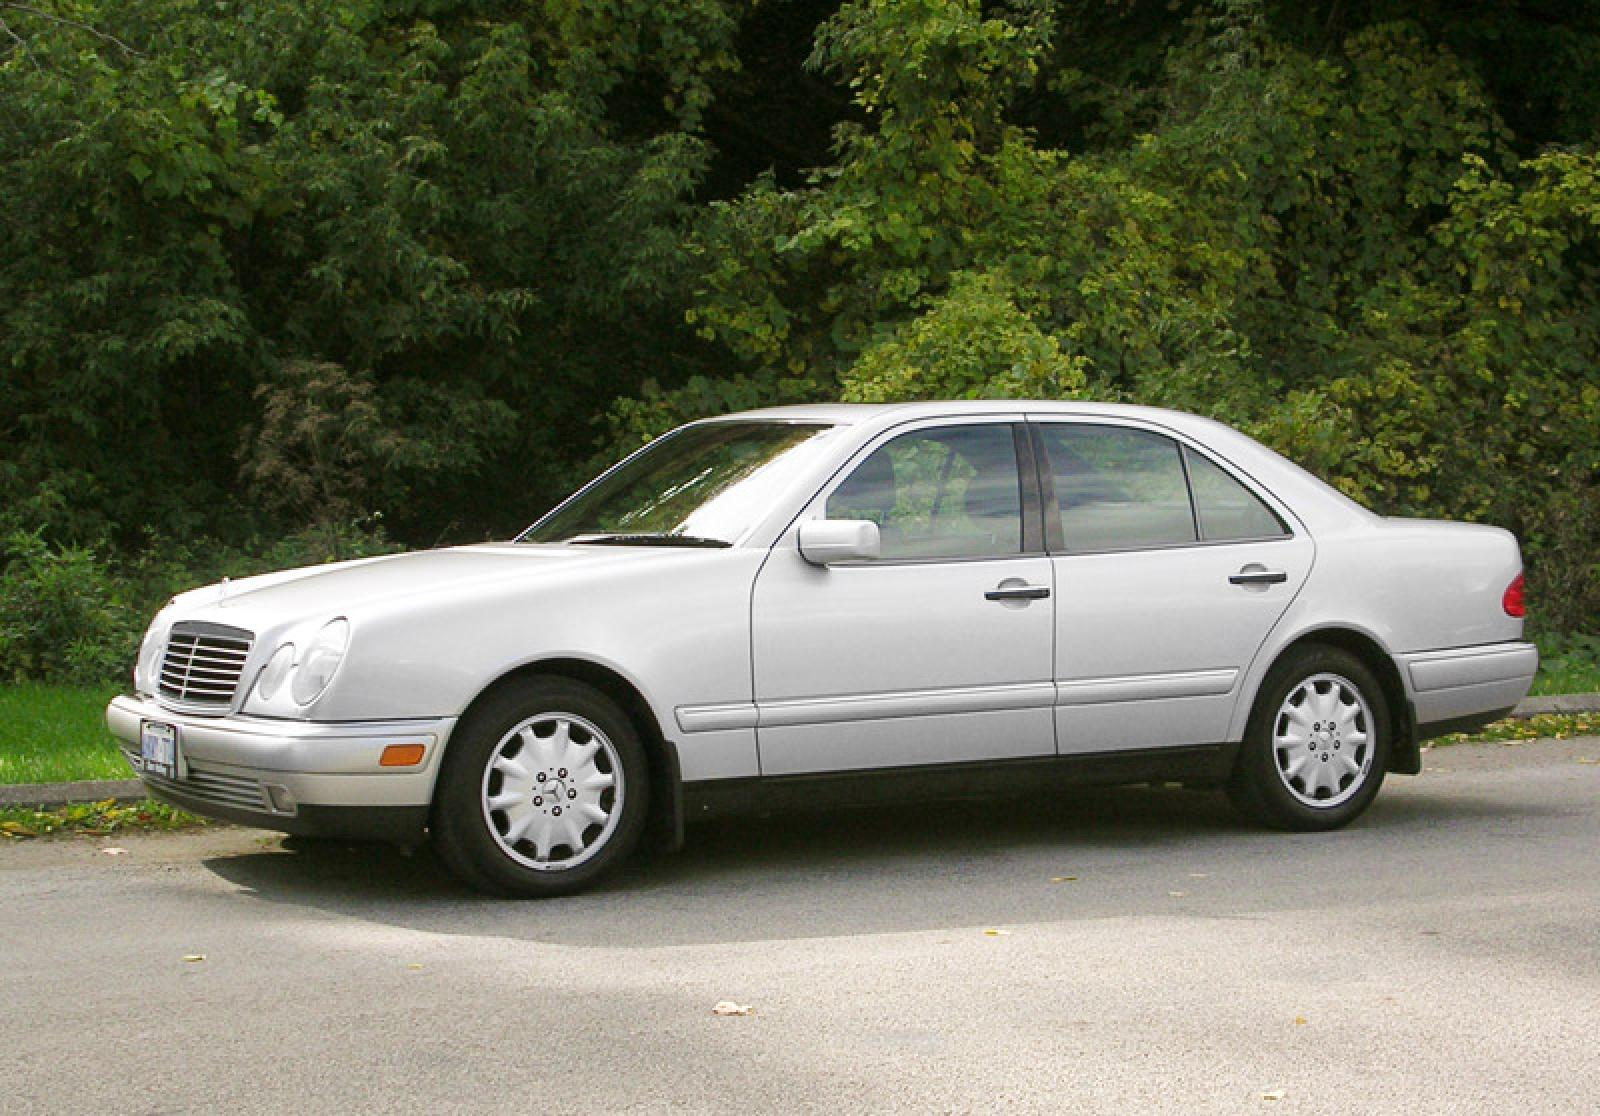 1997 mercedes benz e class information and photos for 1997 mercedes benz e class